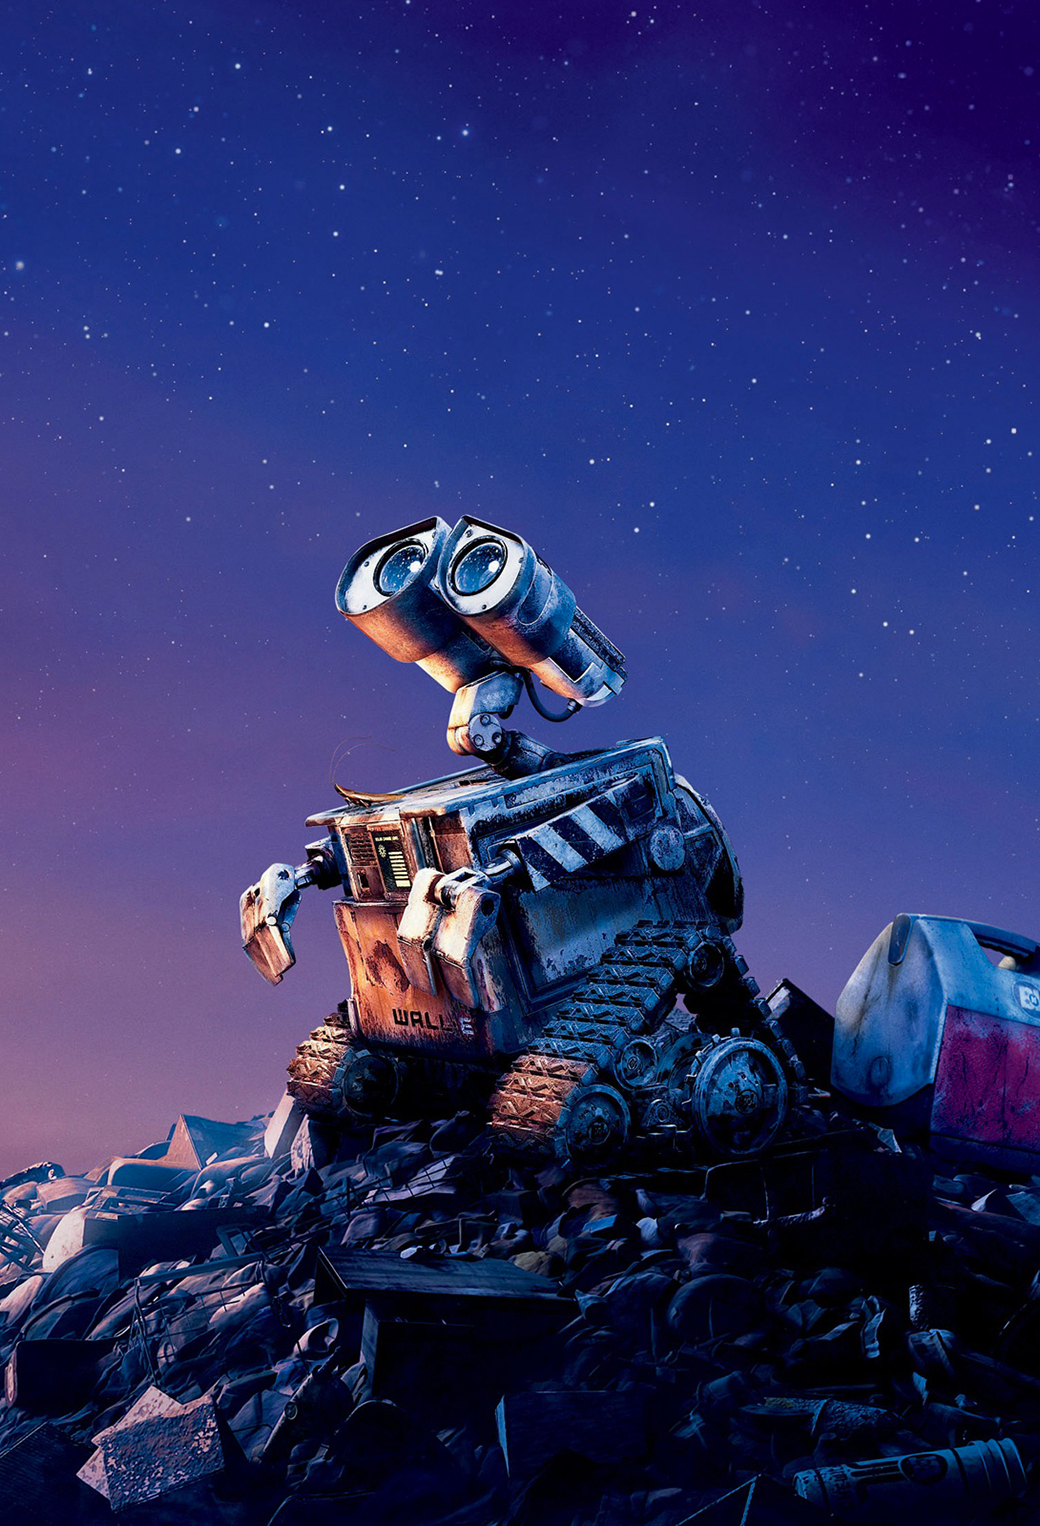 Wall E On Earth Wallpaper For Iphone X 8 7 6